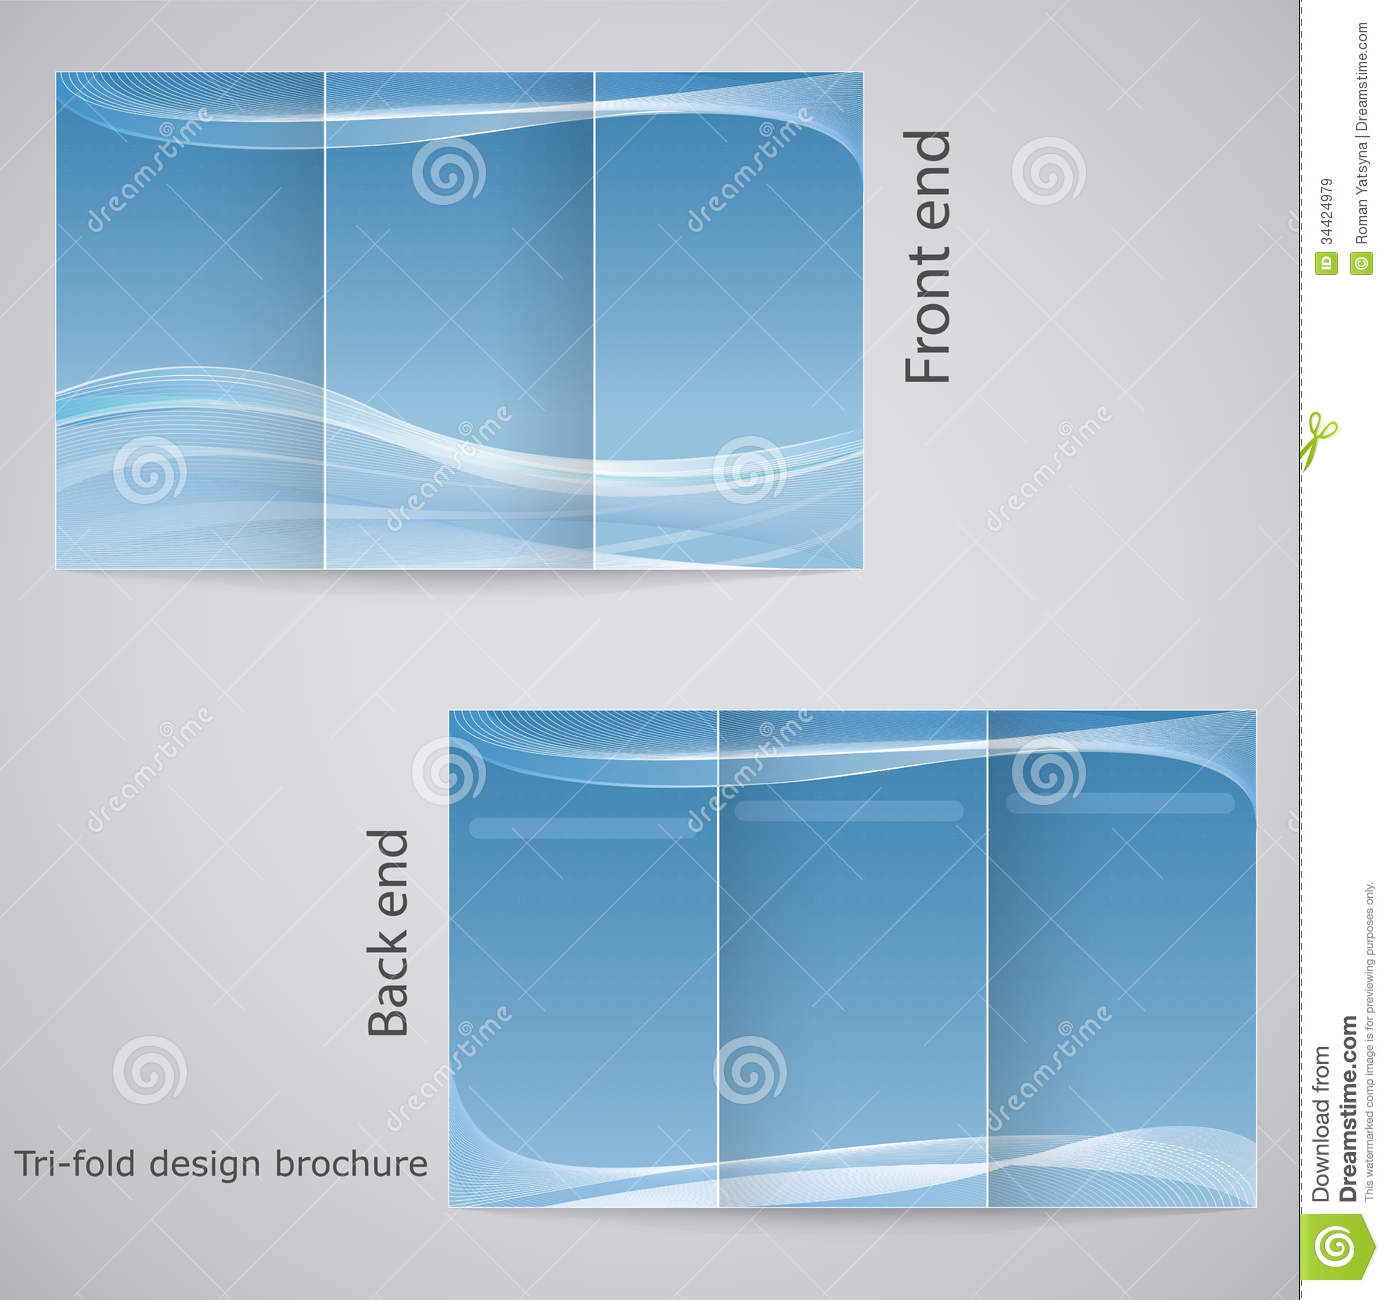 17 tri fold brochure design templates images tri fold for Free tri fold brochure templates for microsoft word